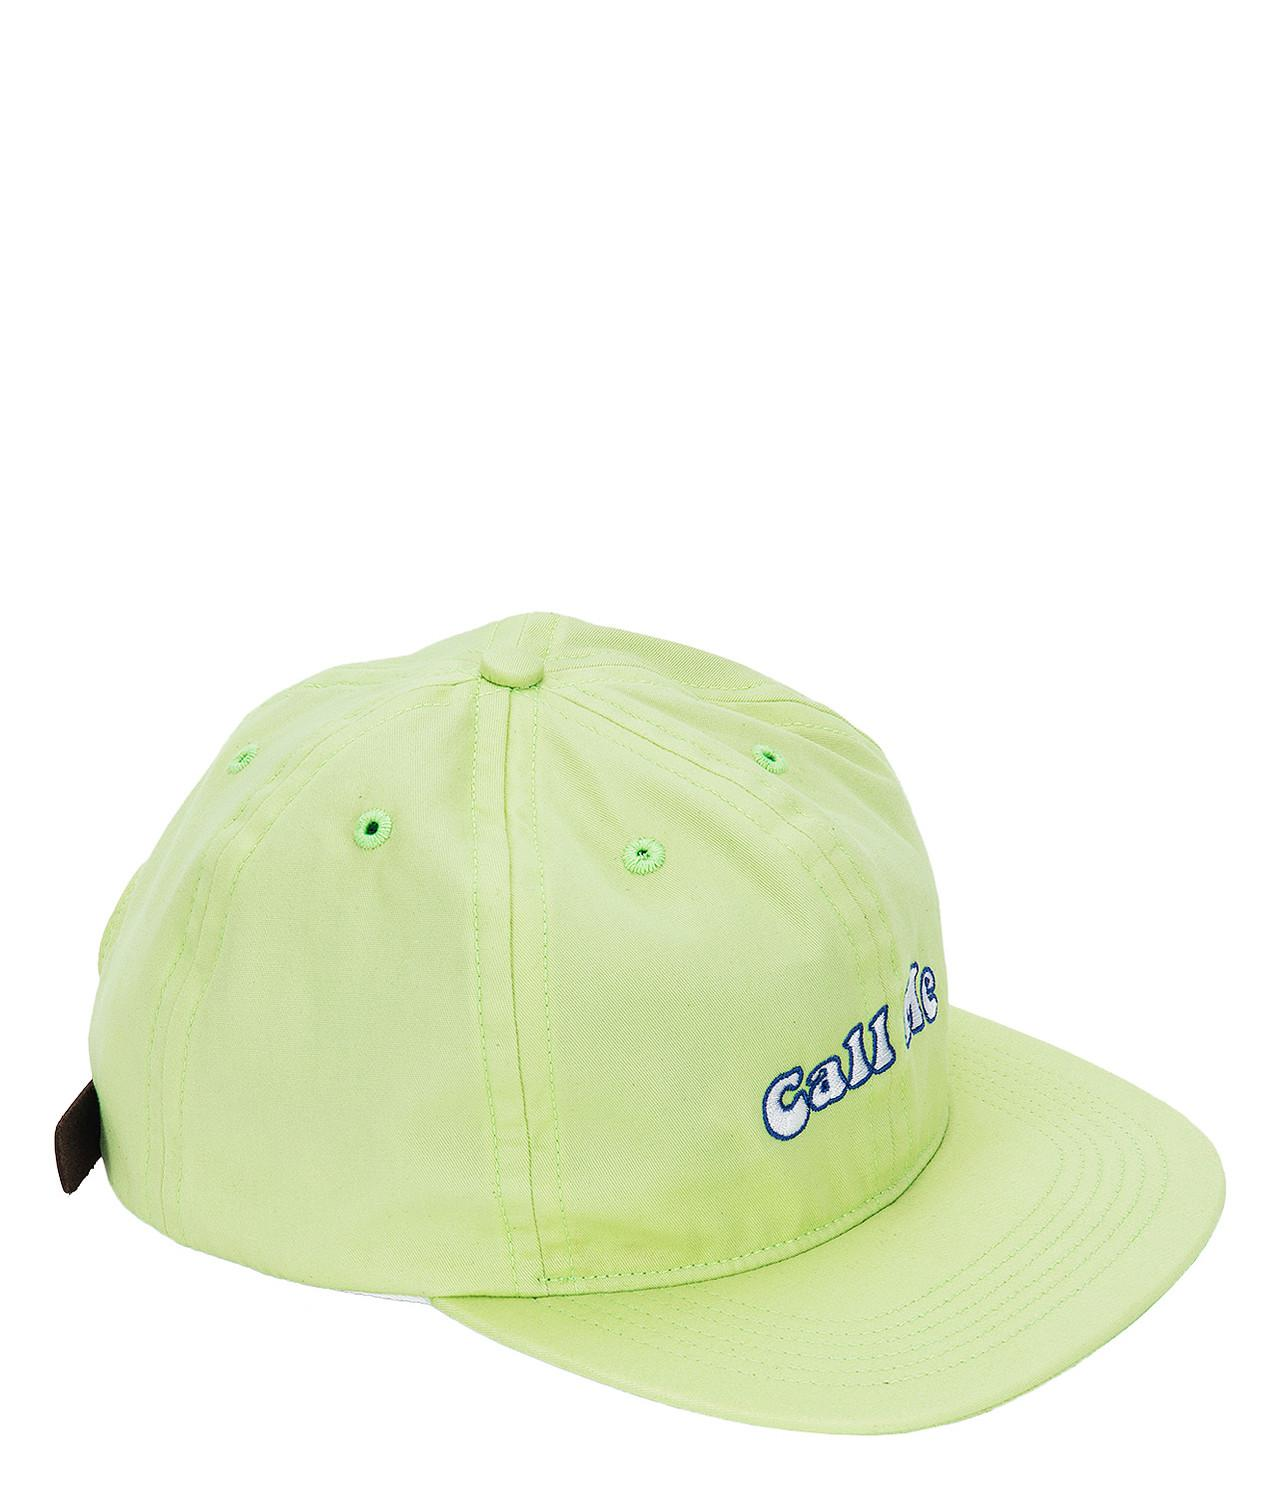 Lyst - Nine One Seven Groovy Hat in Green for Men - Save 12.5% a706df57b458